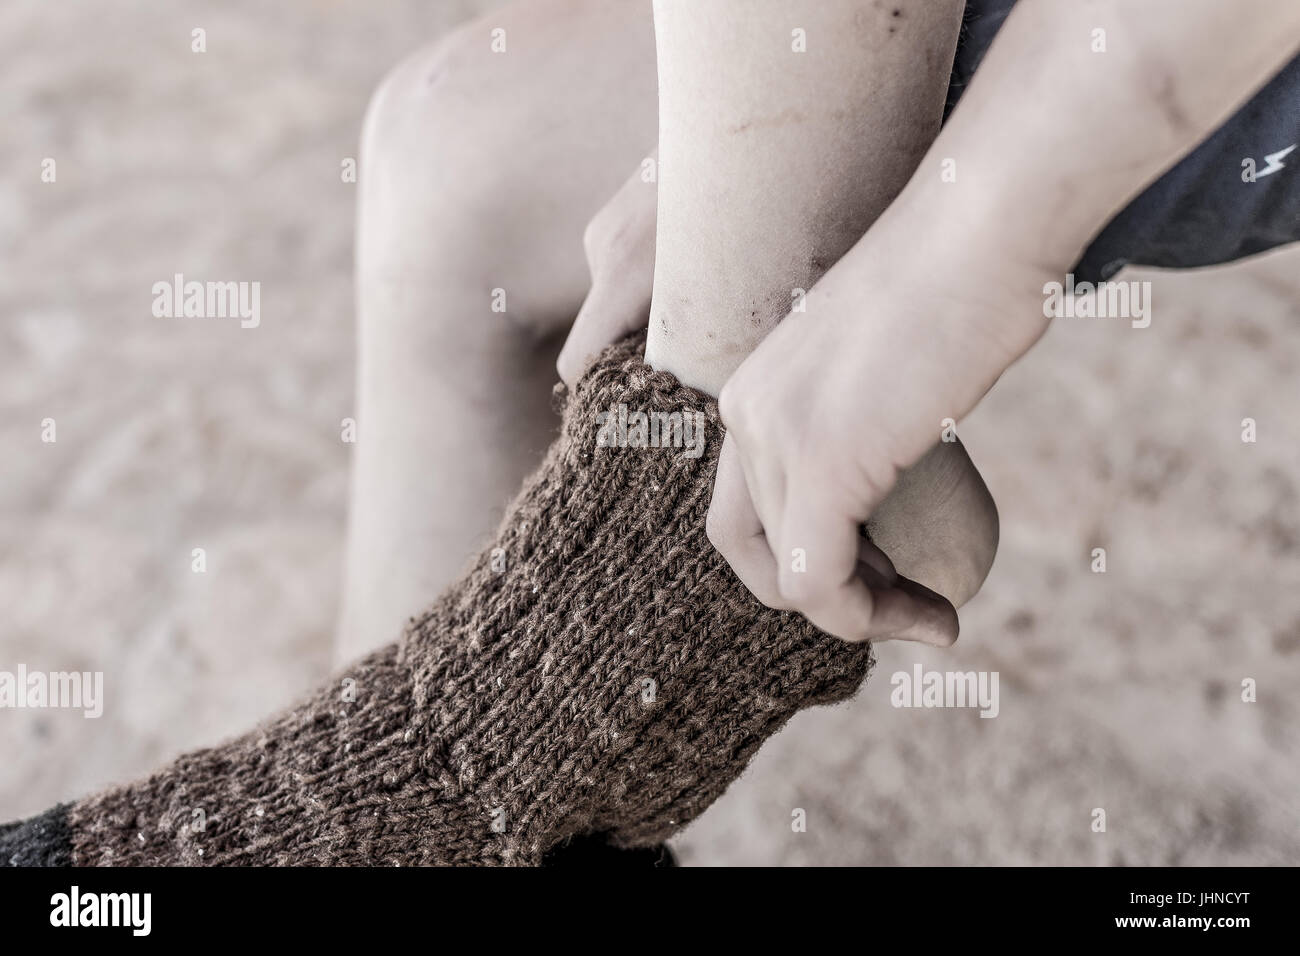 Boy in Traditional Handmade Knitted Wool Socks - Stock Image